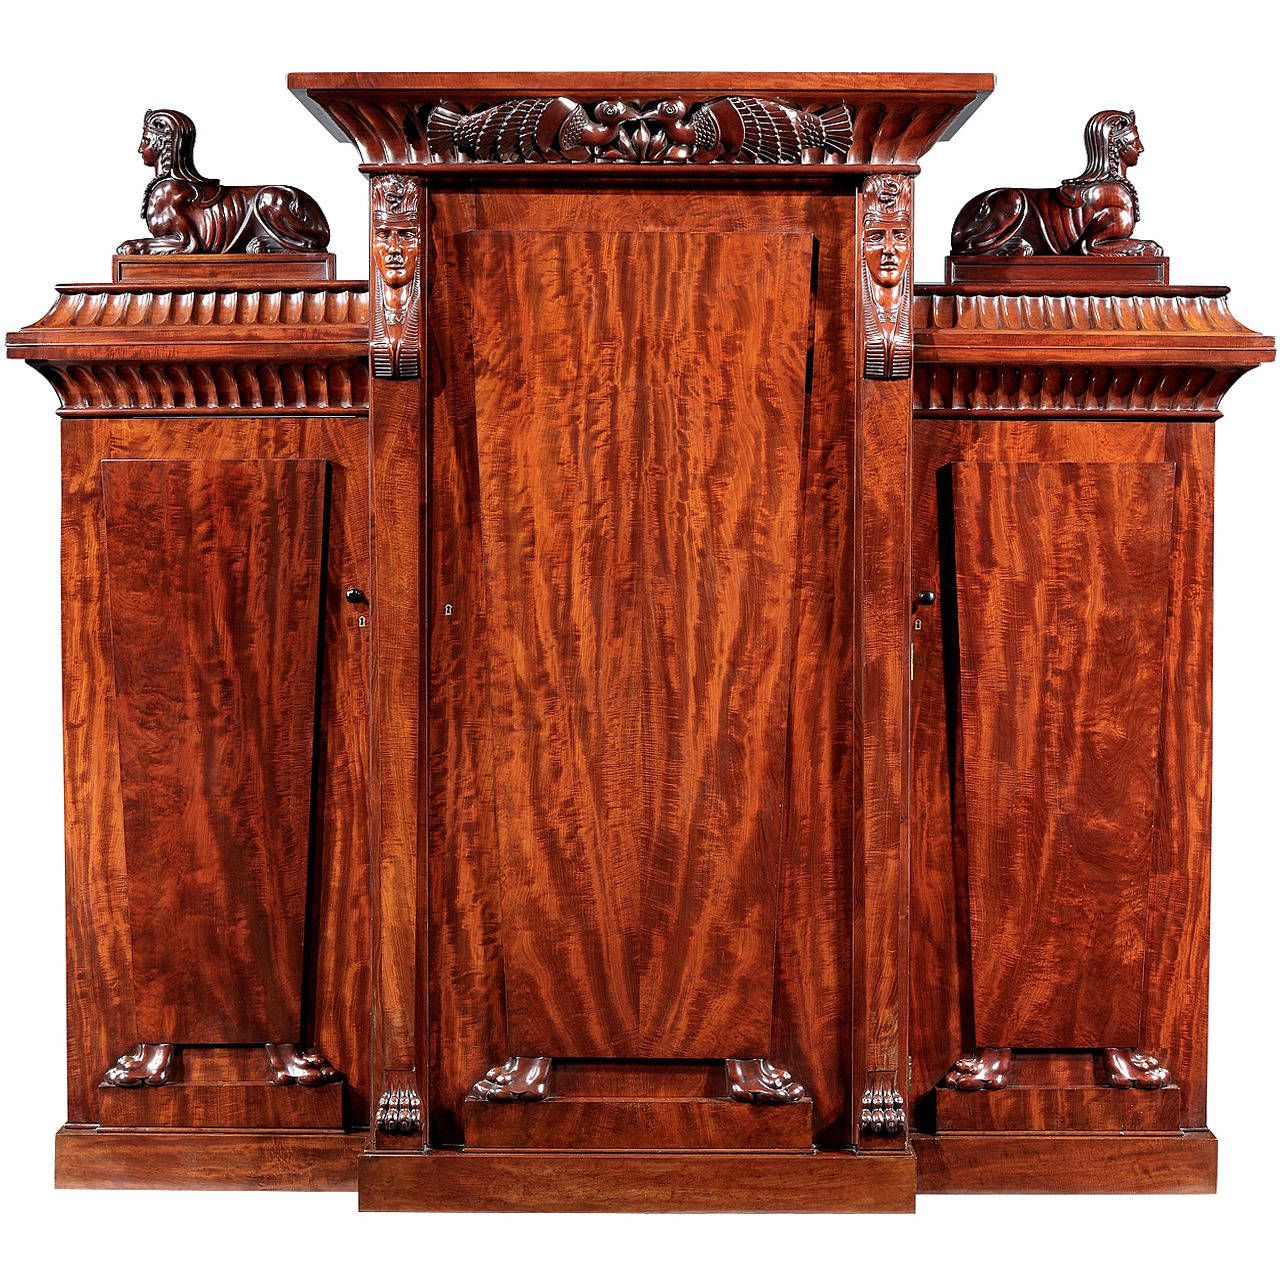 Rare Regency Cabinet in the Egyptian Manner | From a unique collection of antique and modern wardrobes and armoires at https://www.1stdibs.com/furniture/storage-case-pieces/wardrobes-armoires/